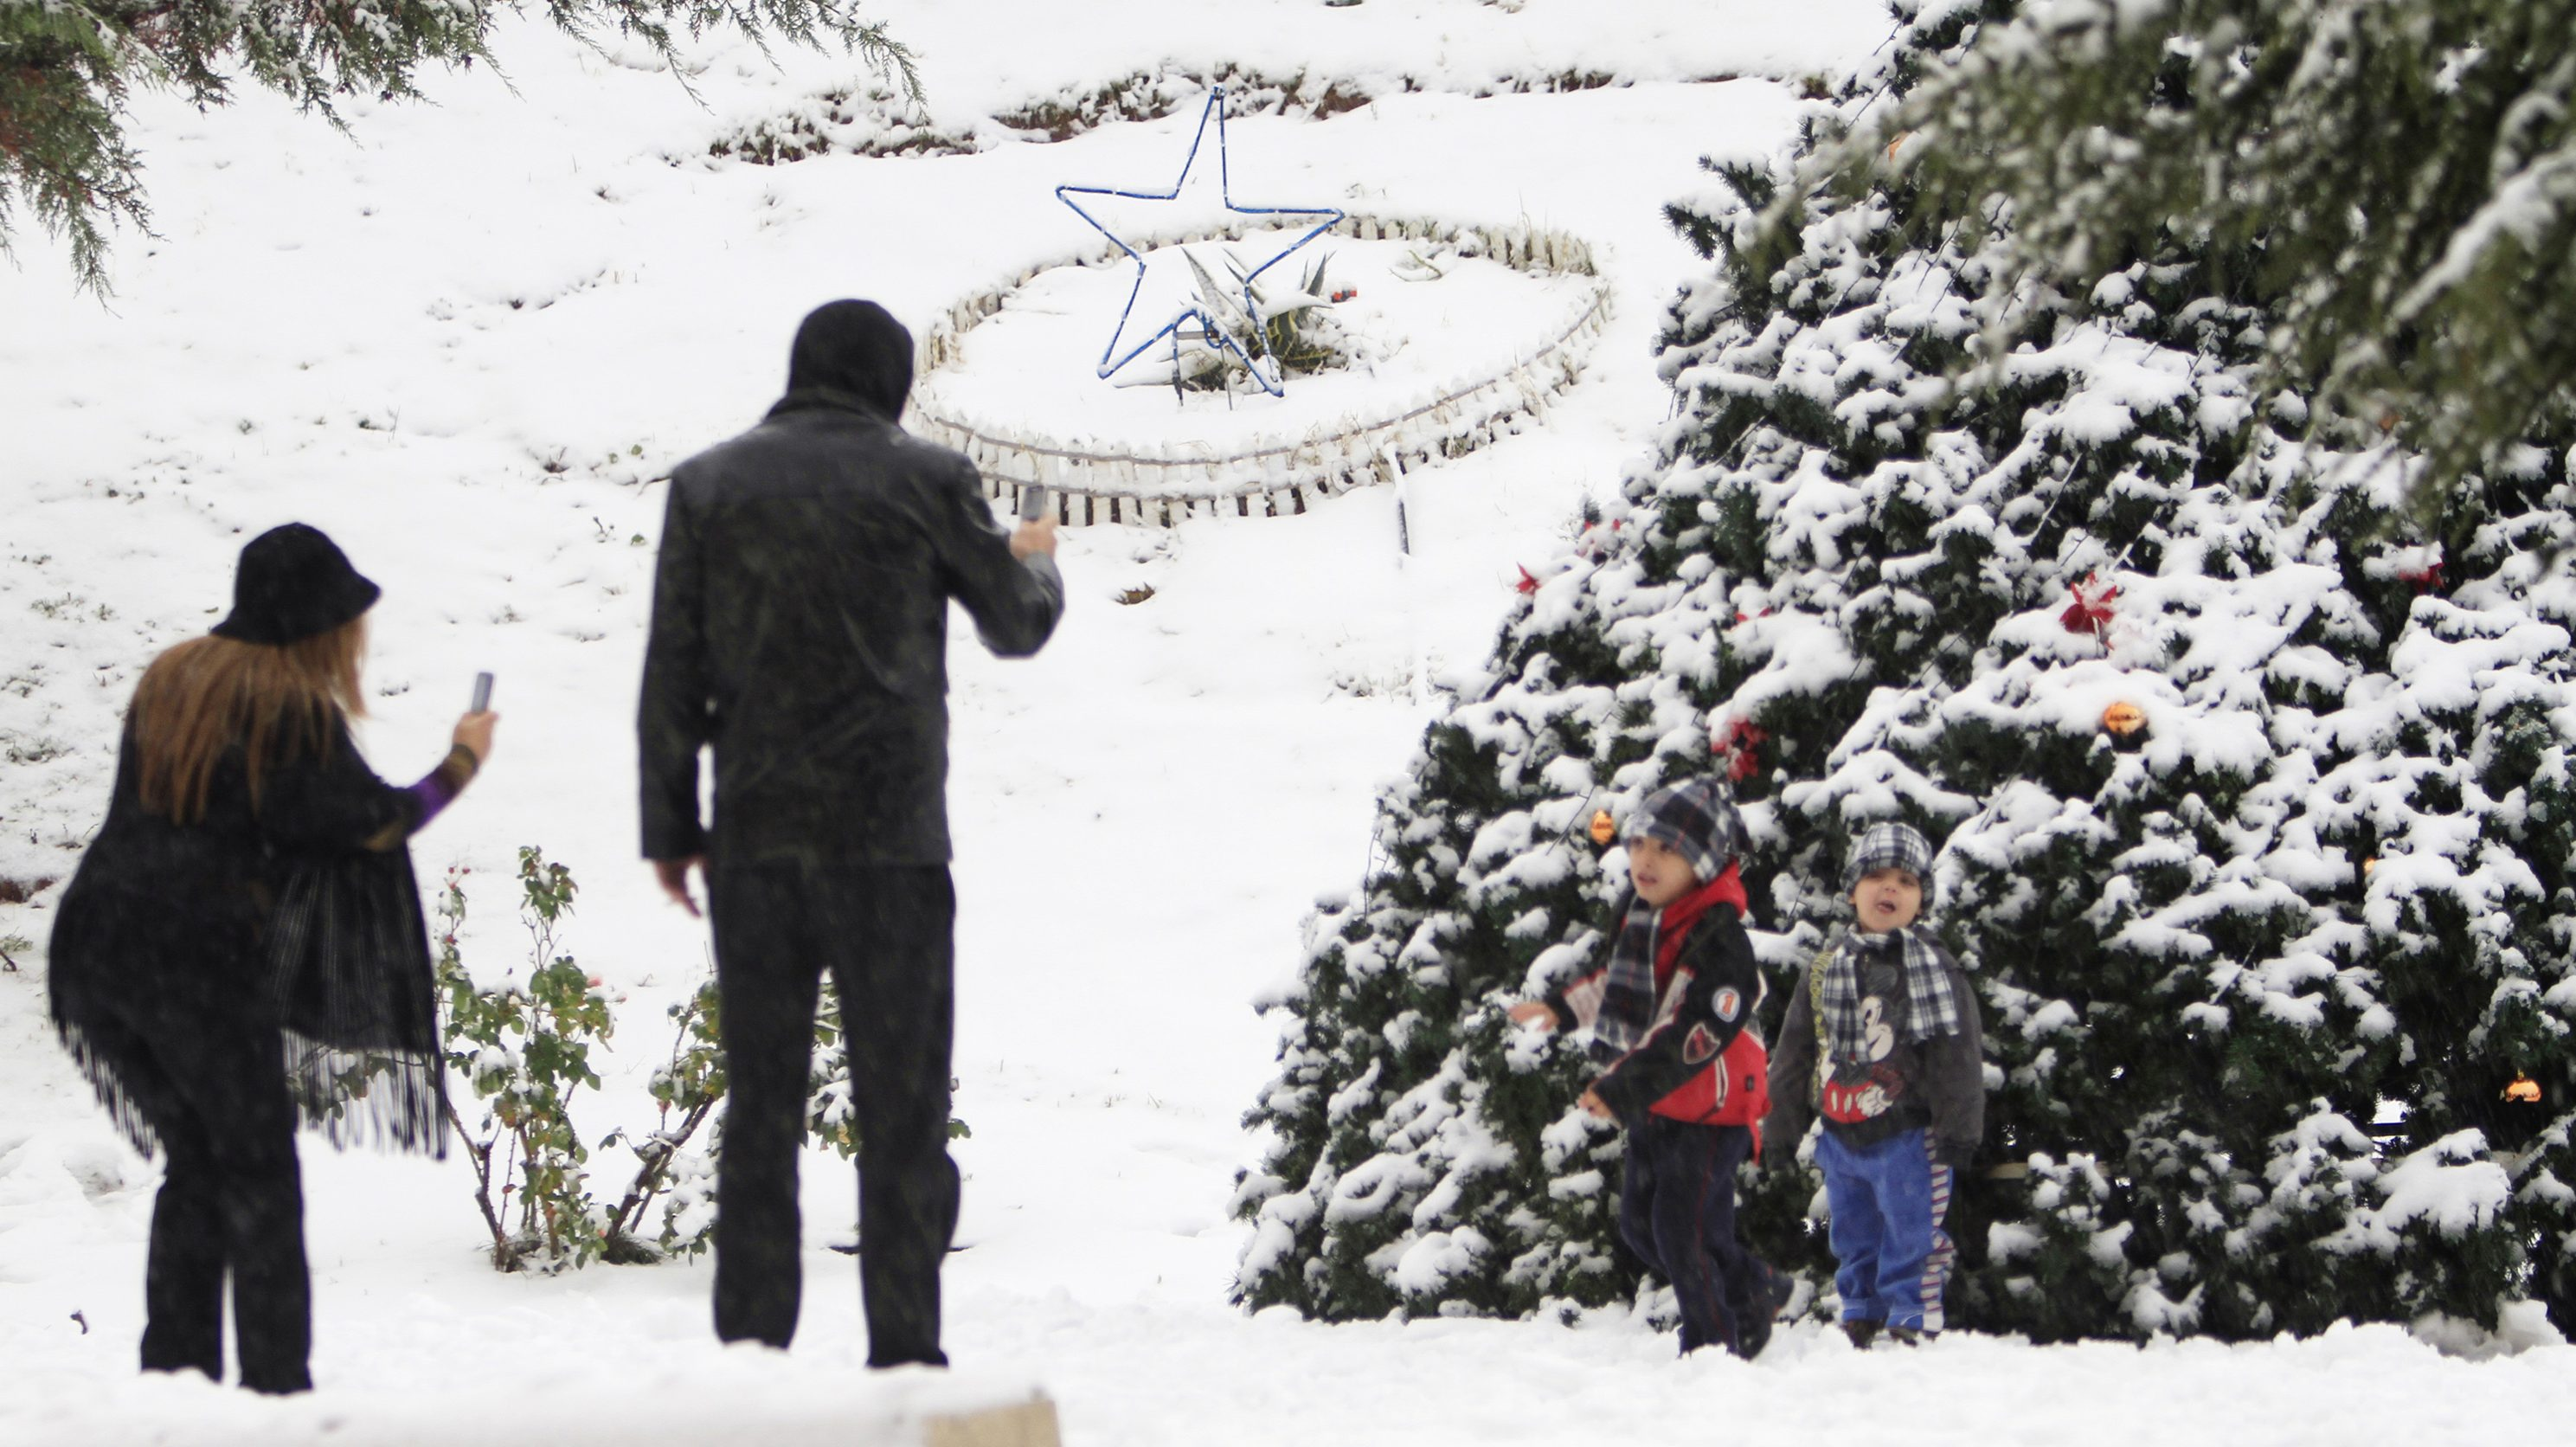 A man and a woman take photos of their children next to a Christmas tree after a snow storm hit Bahamdoun village in eastern Lebanon, December 12, 2010.